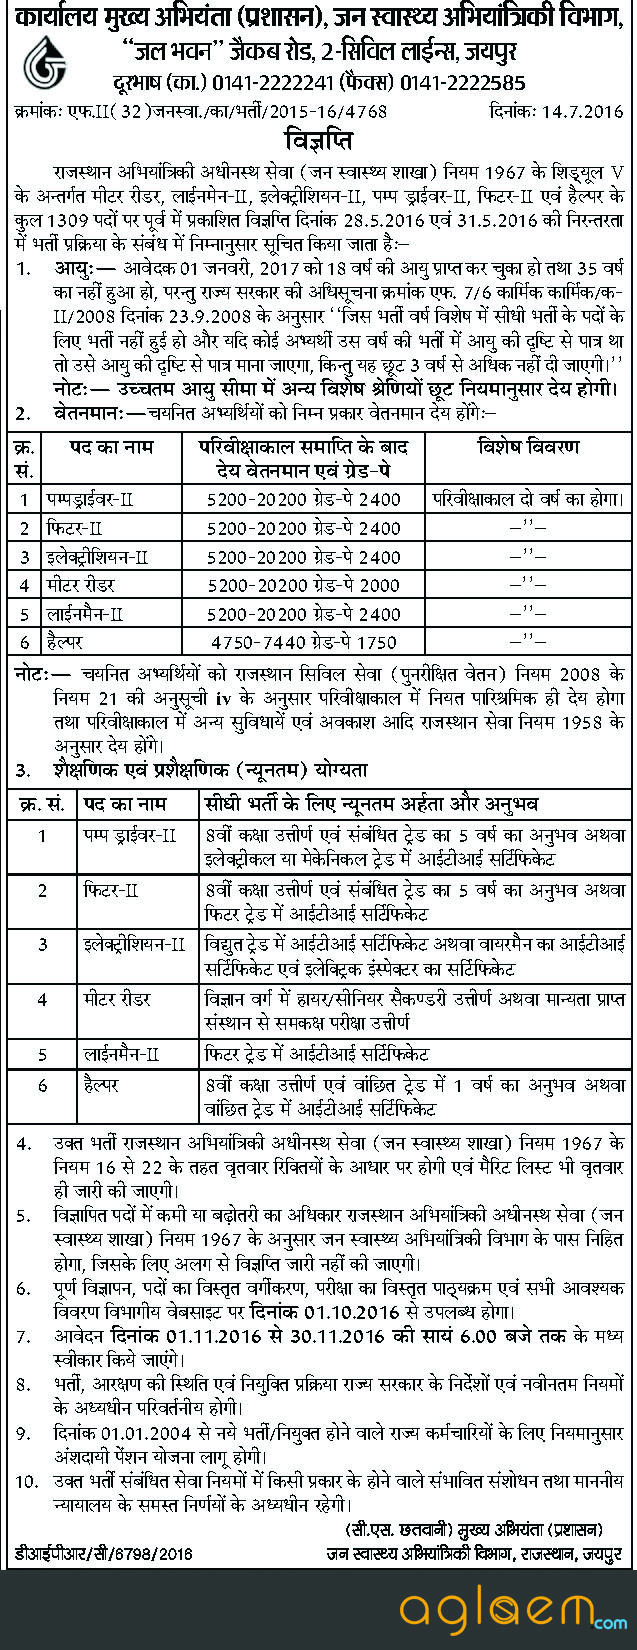 PHED Rajasthan Recruitment 2016